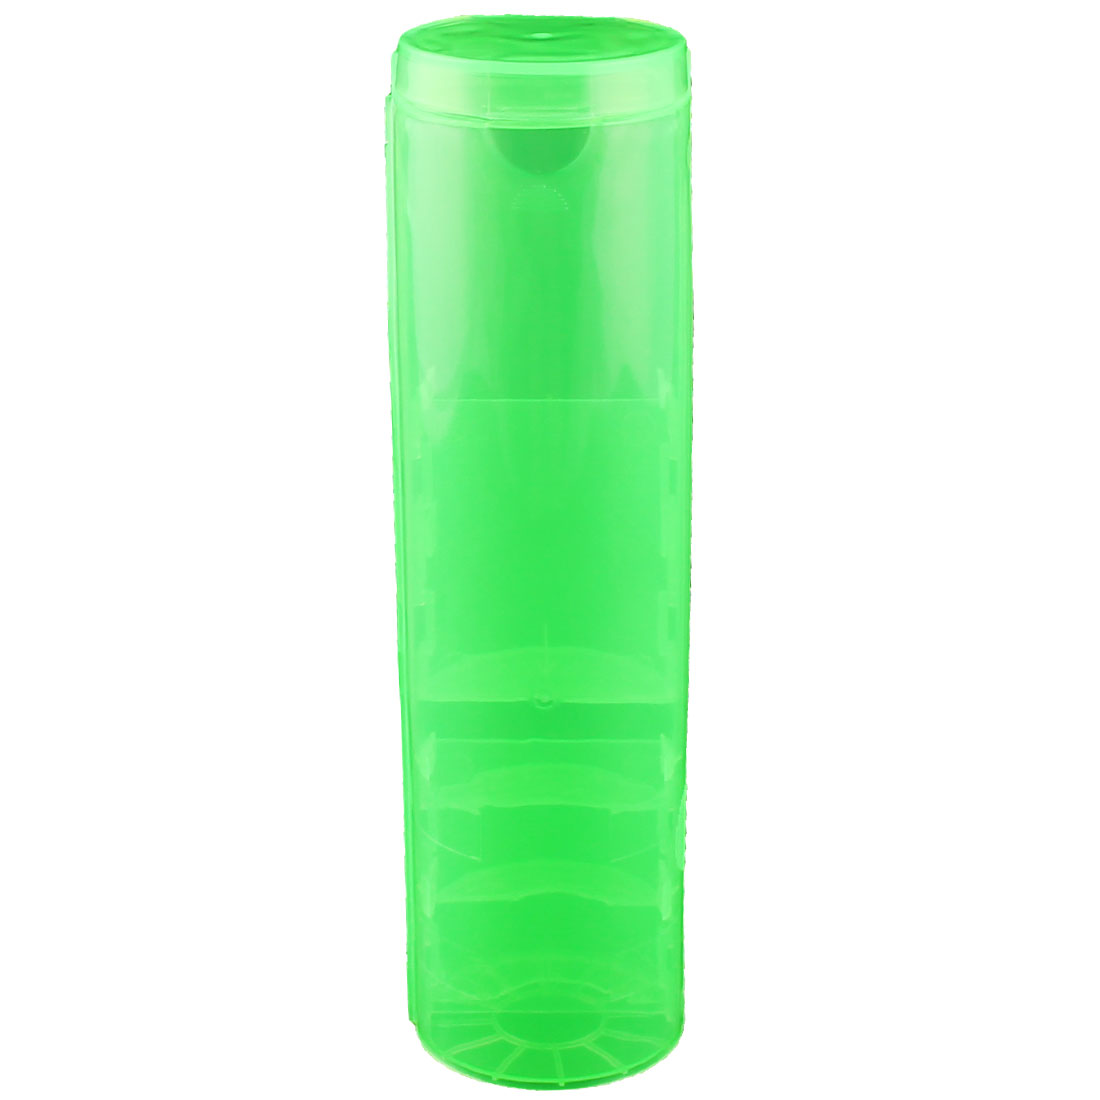 Home Office Plastic Cylindrical Design Detachable Stationery Holder Clear Green